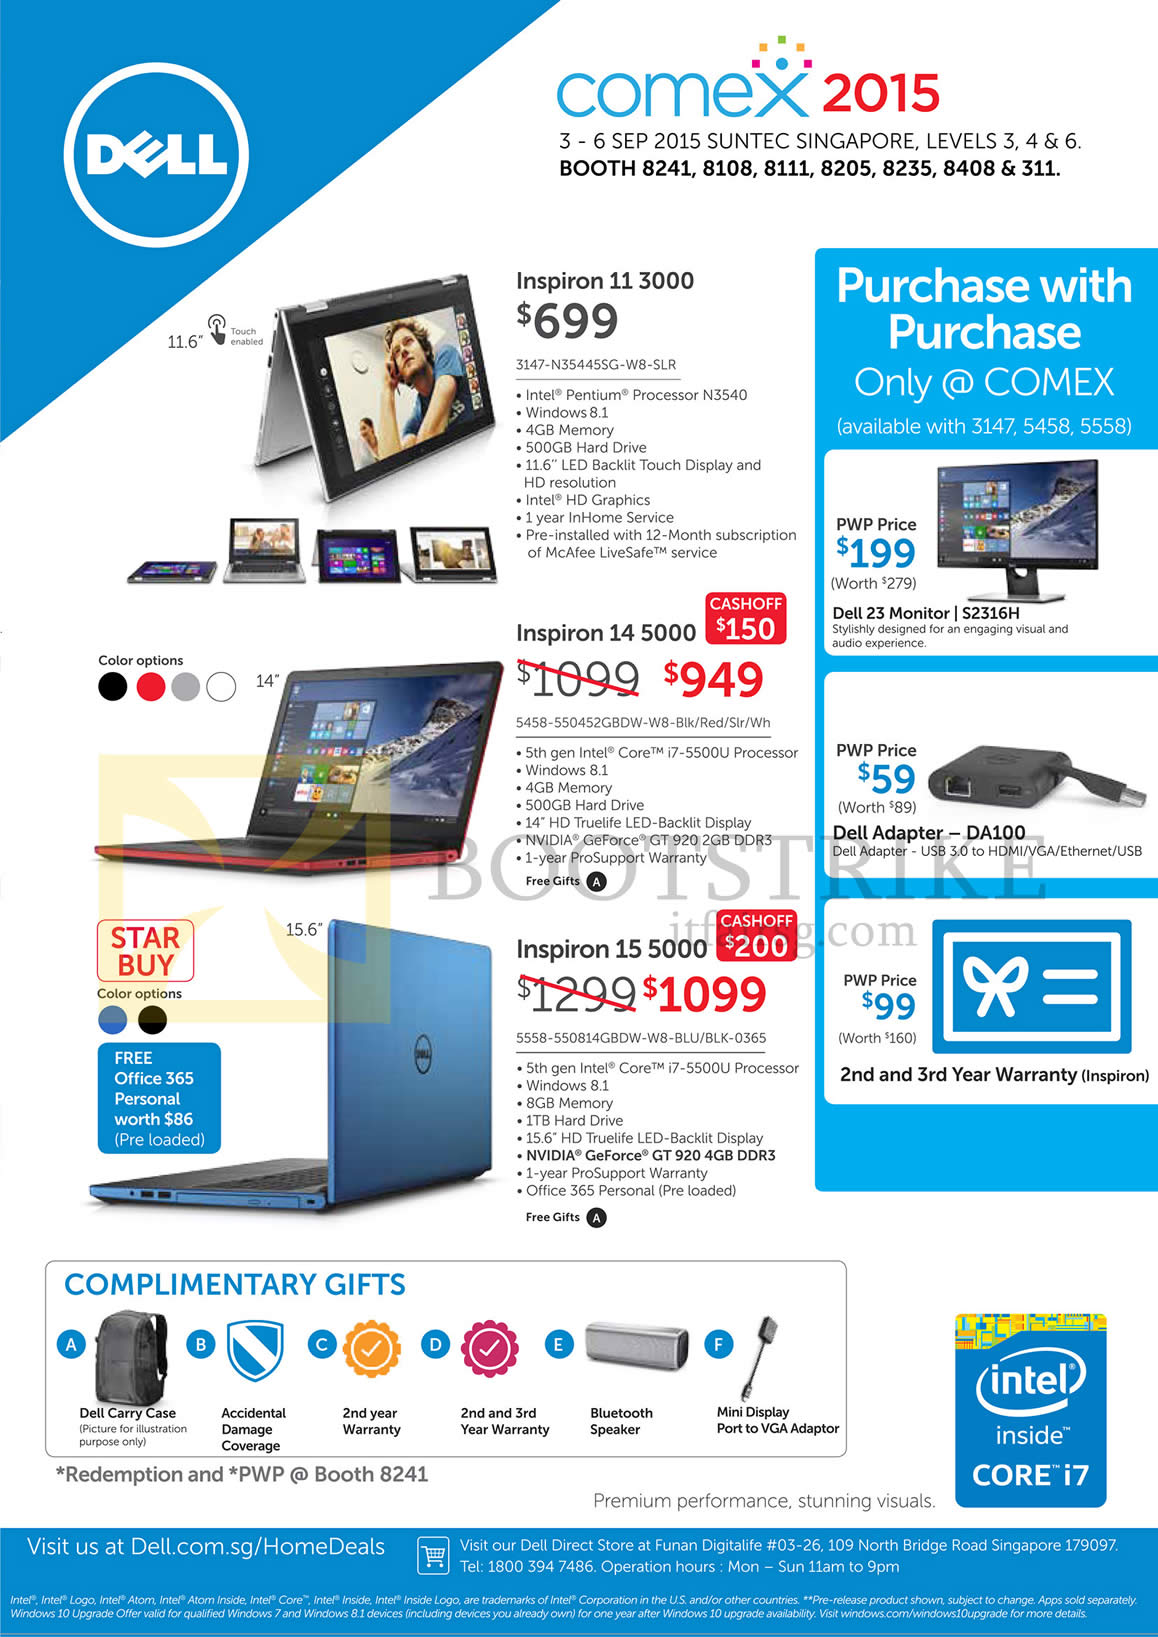 COMEX 2015 price list image brochure of Dell Notebooks, Complimentary Gifts, Purchase With Purchase, Inspiron 11 3000 3147-N35445SG-W8-SLR, 14 5000 5458-550452GBDW-W8, 15 5558-550814GBDW-W8-BLU-BLK-0365